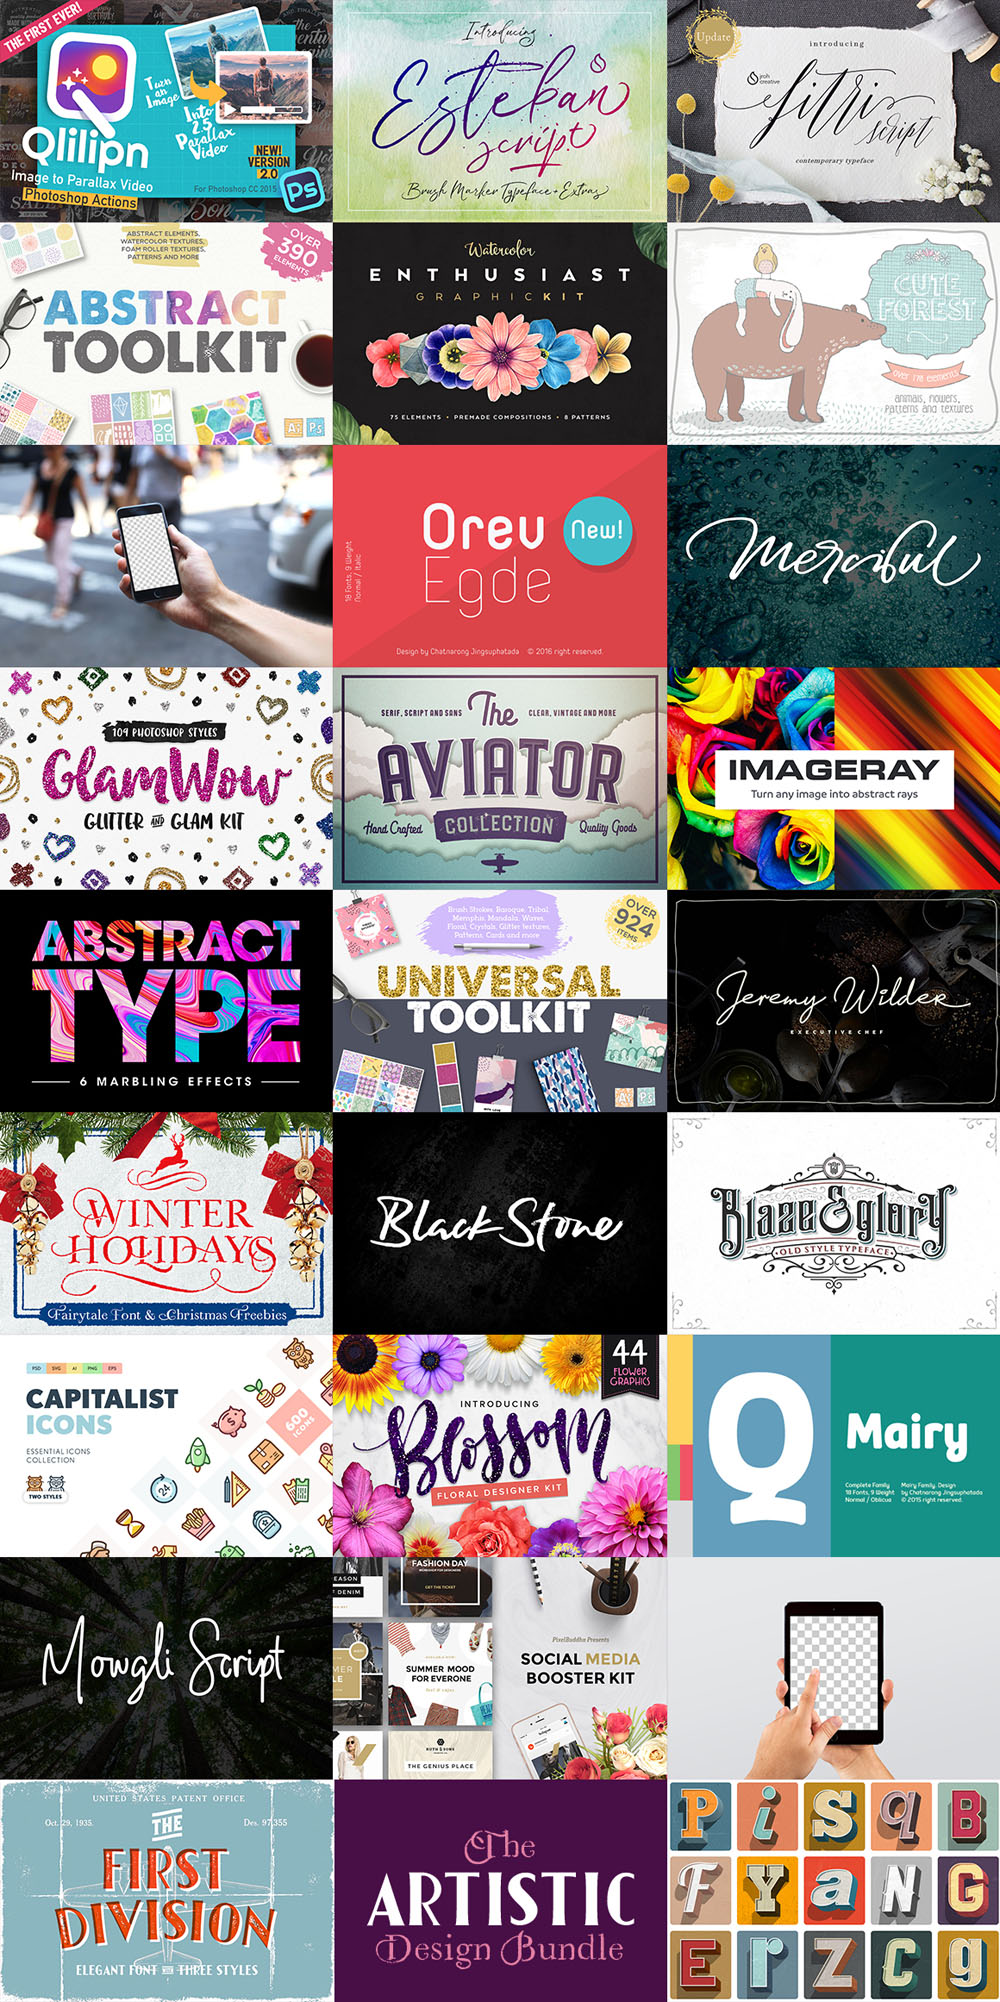 Artistic Design Bundle Full View